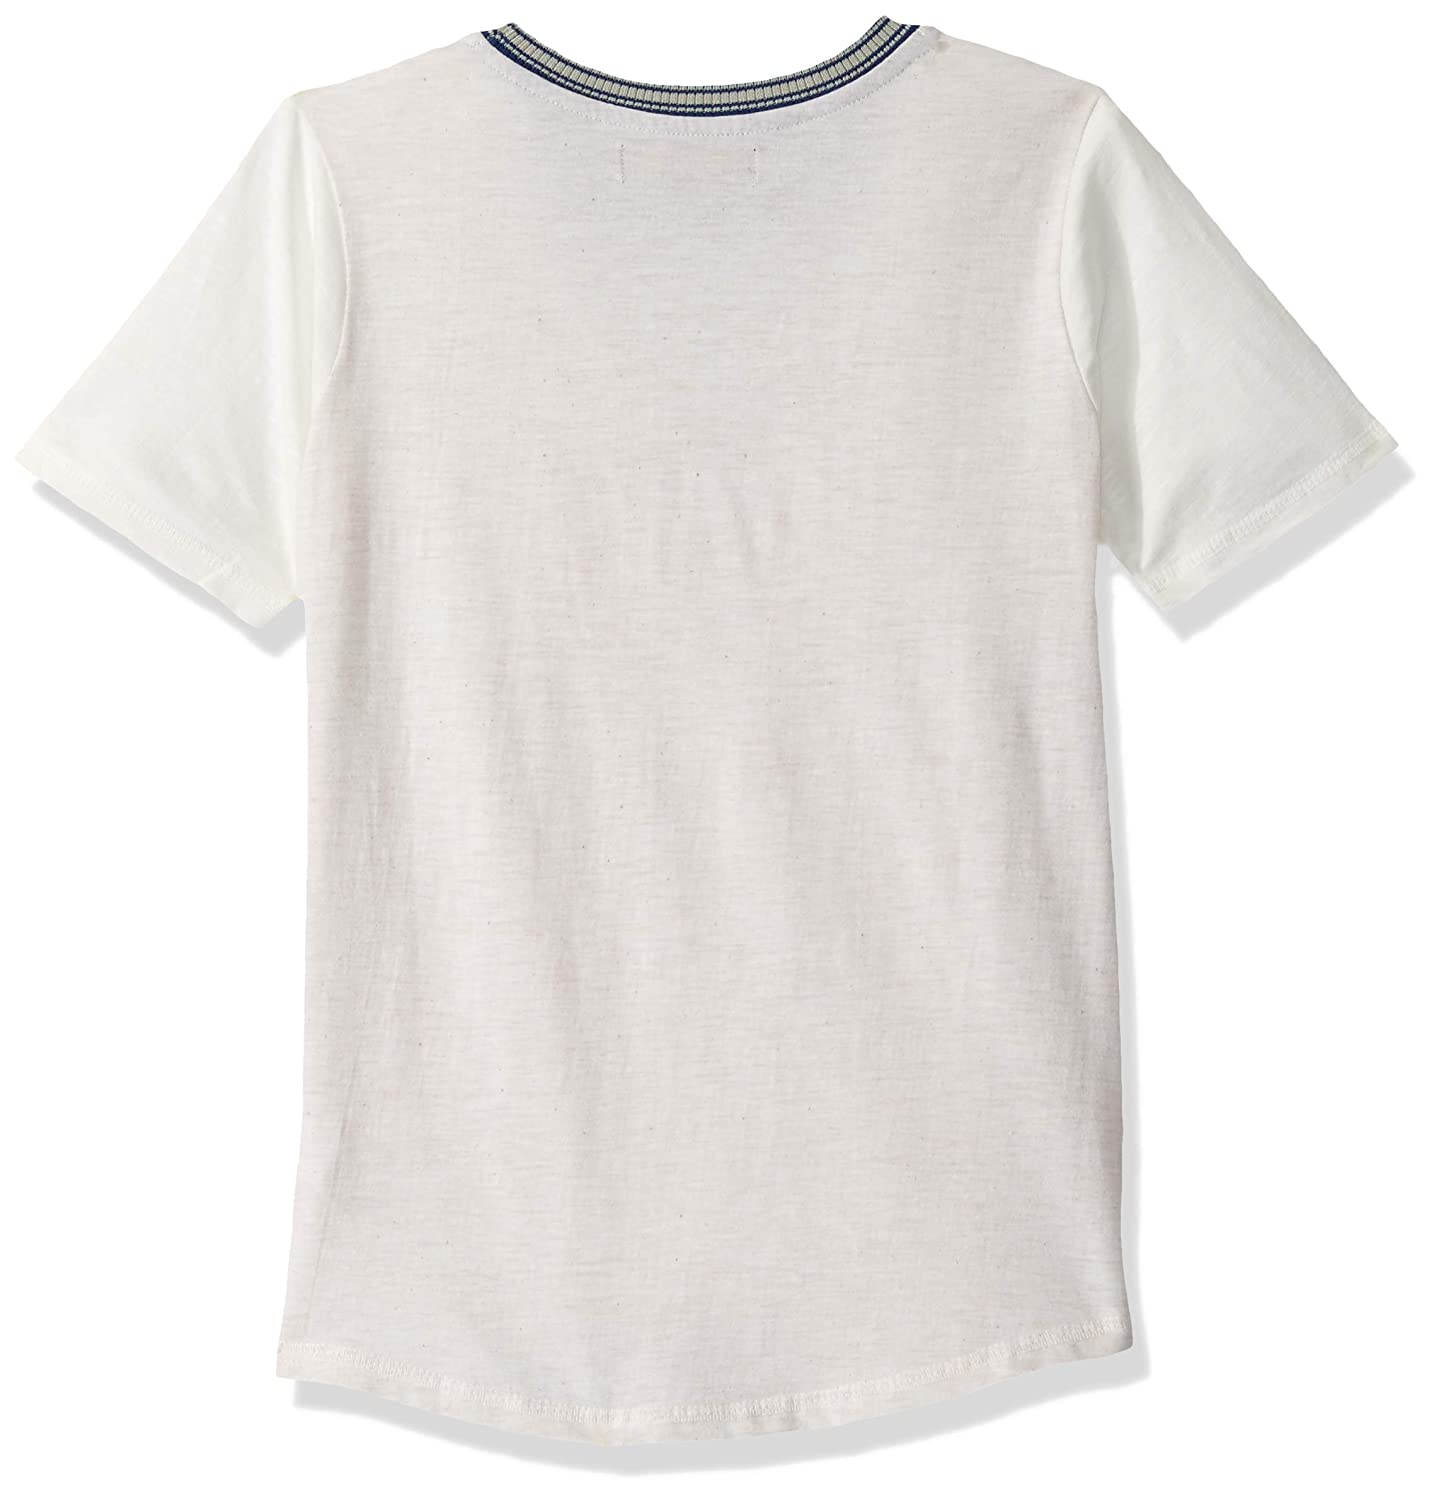 7 For All Mankind Boys Short Sleeve T-Shirt